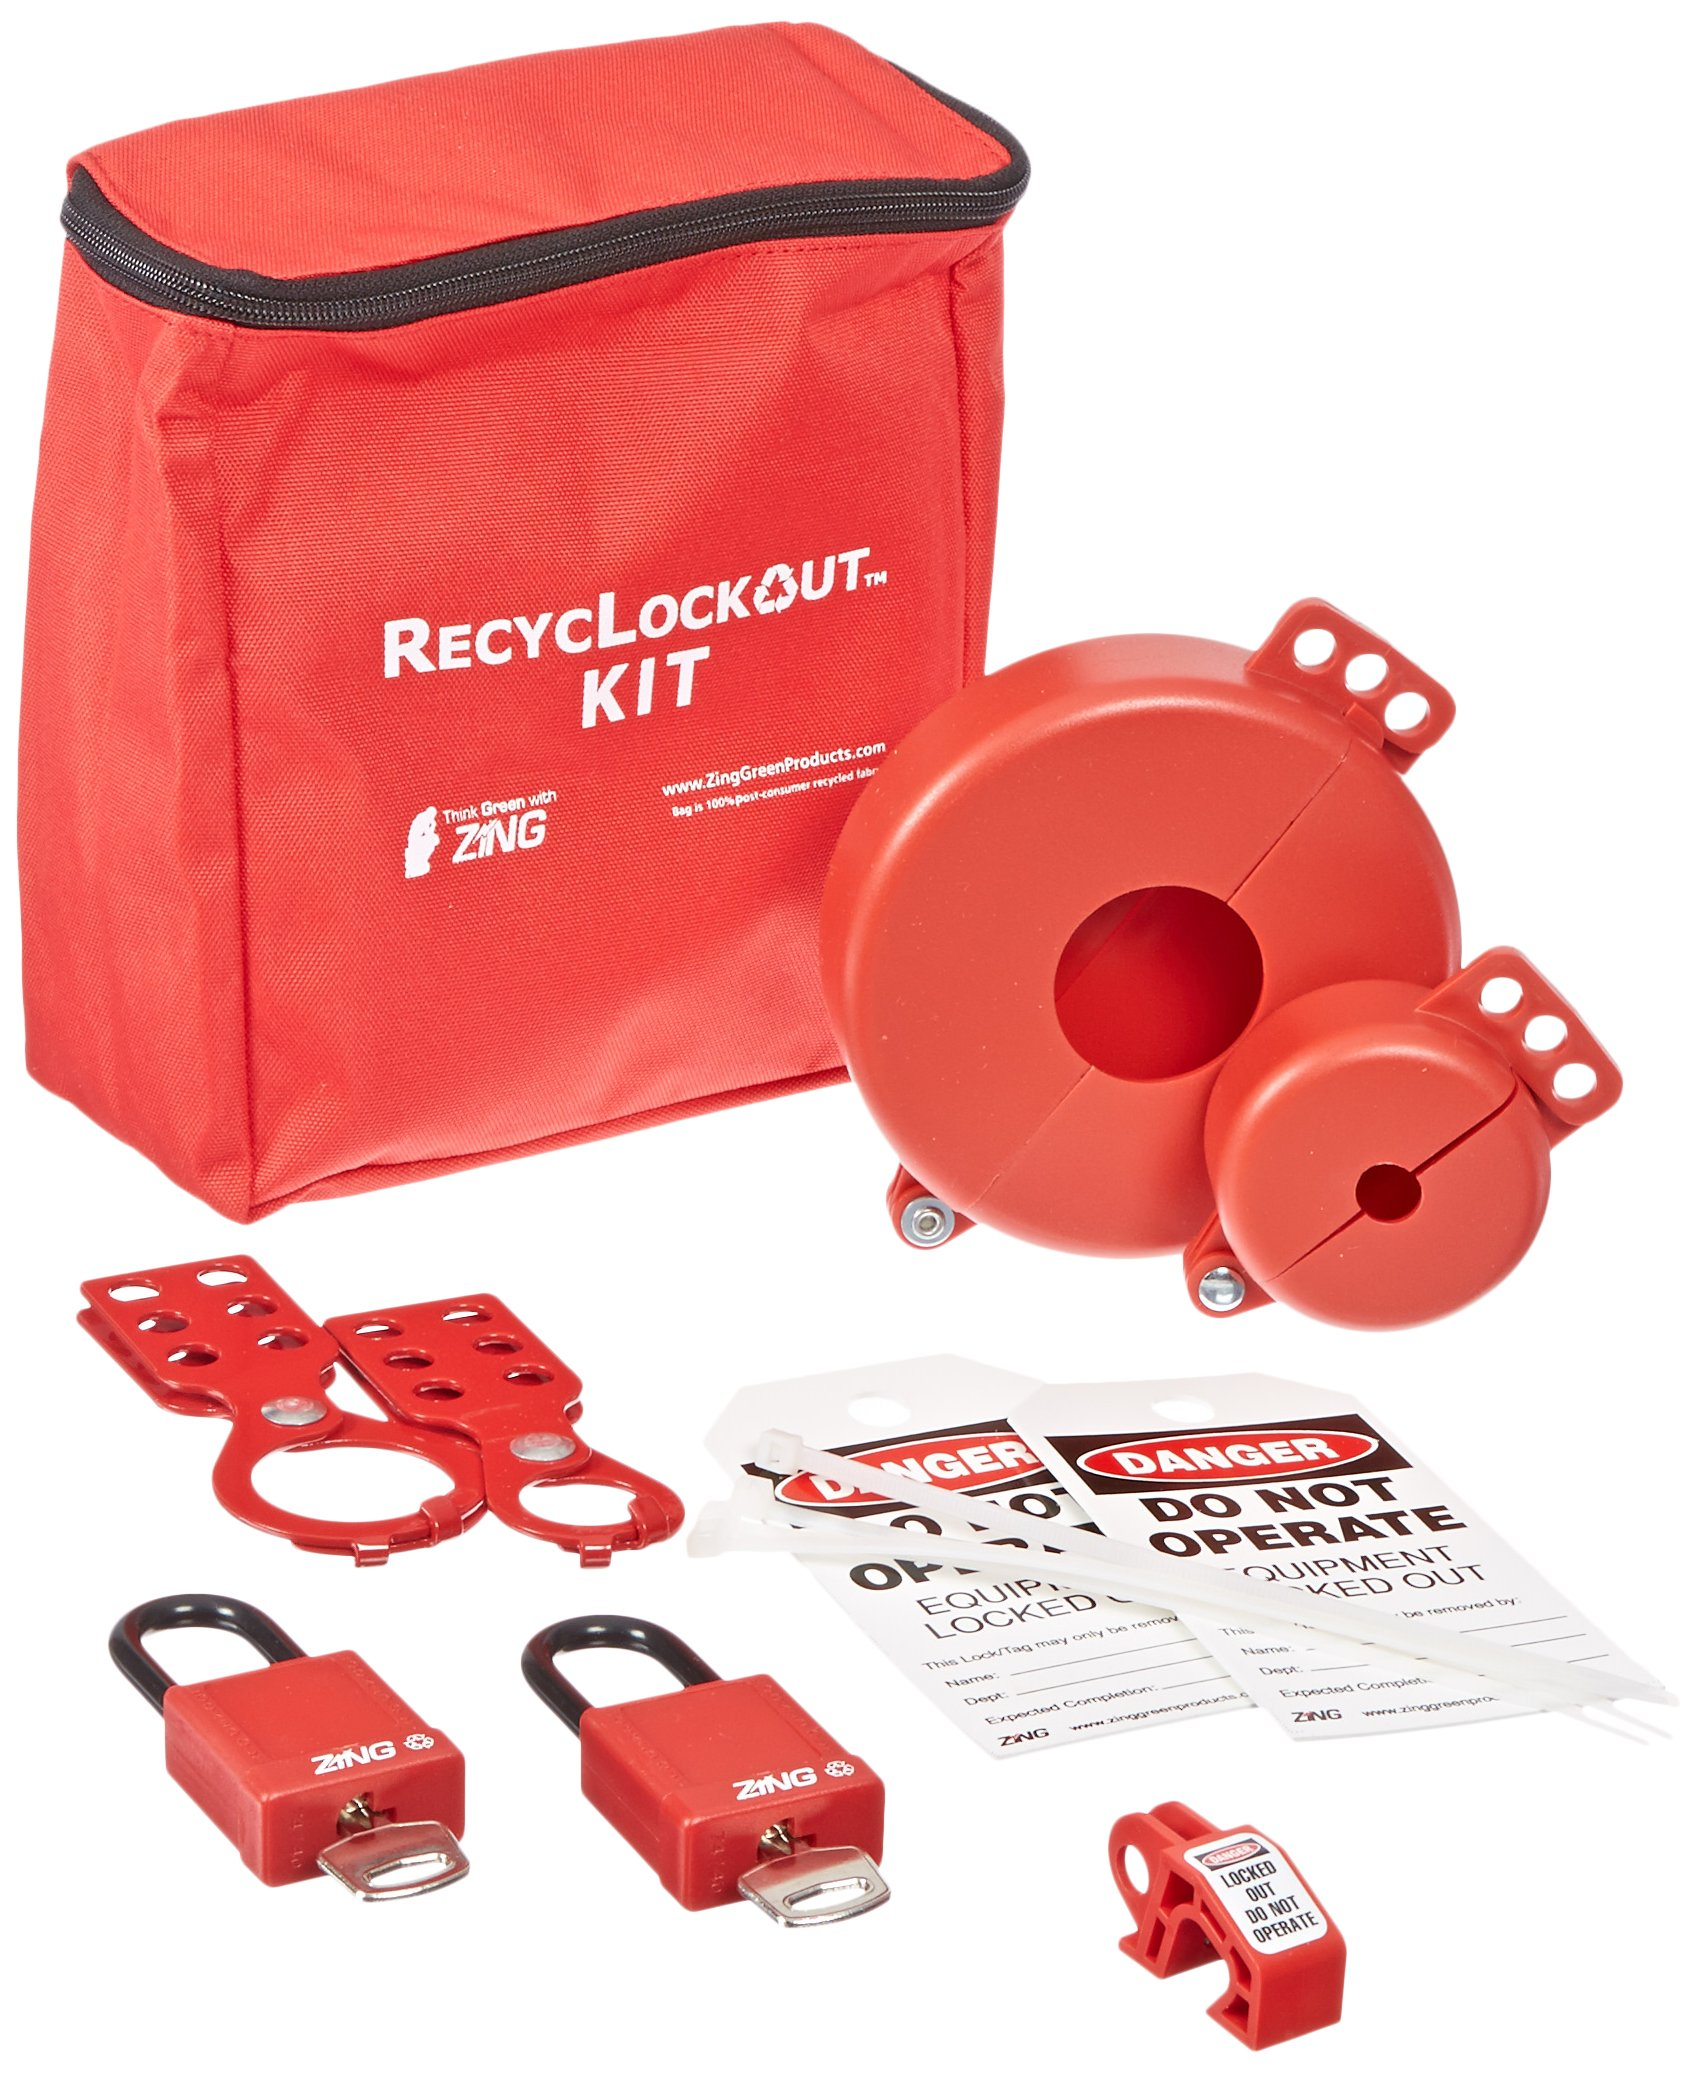 ZING 7120 RecycLockout Lockout Tagout Kit, 12 Component, Valve Lockout by Zing Green Products (Image #2)